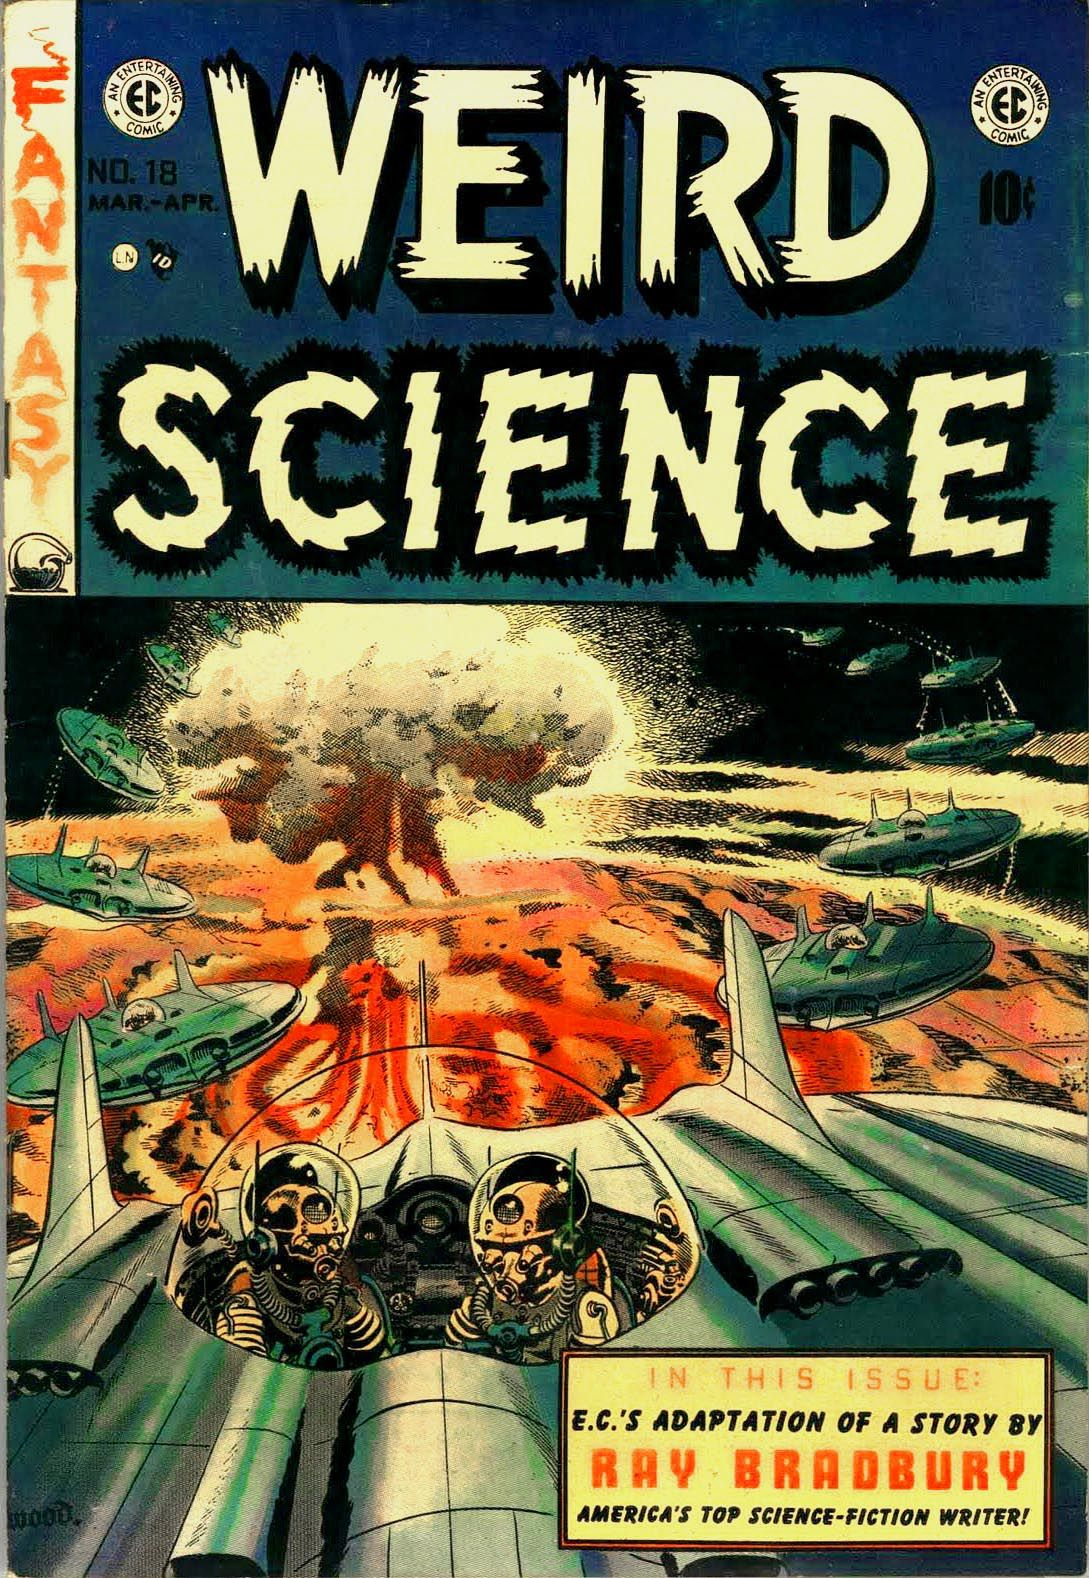 essays about science fiction Welcome to science fiction and fantasy writing have you always harbored a secret (or not so secret) yearning to write this course is designed to help you learn many of the skills you need to write successful science fiction and fantasy stories.